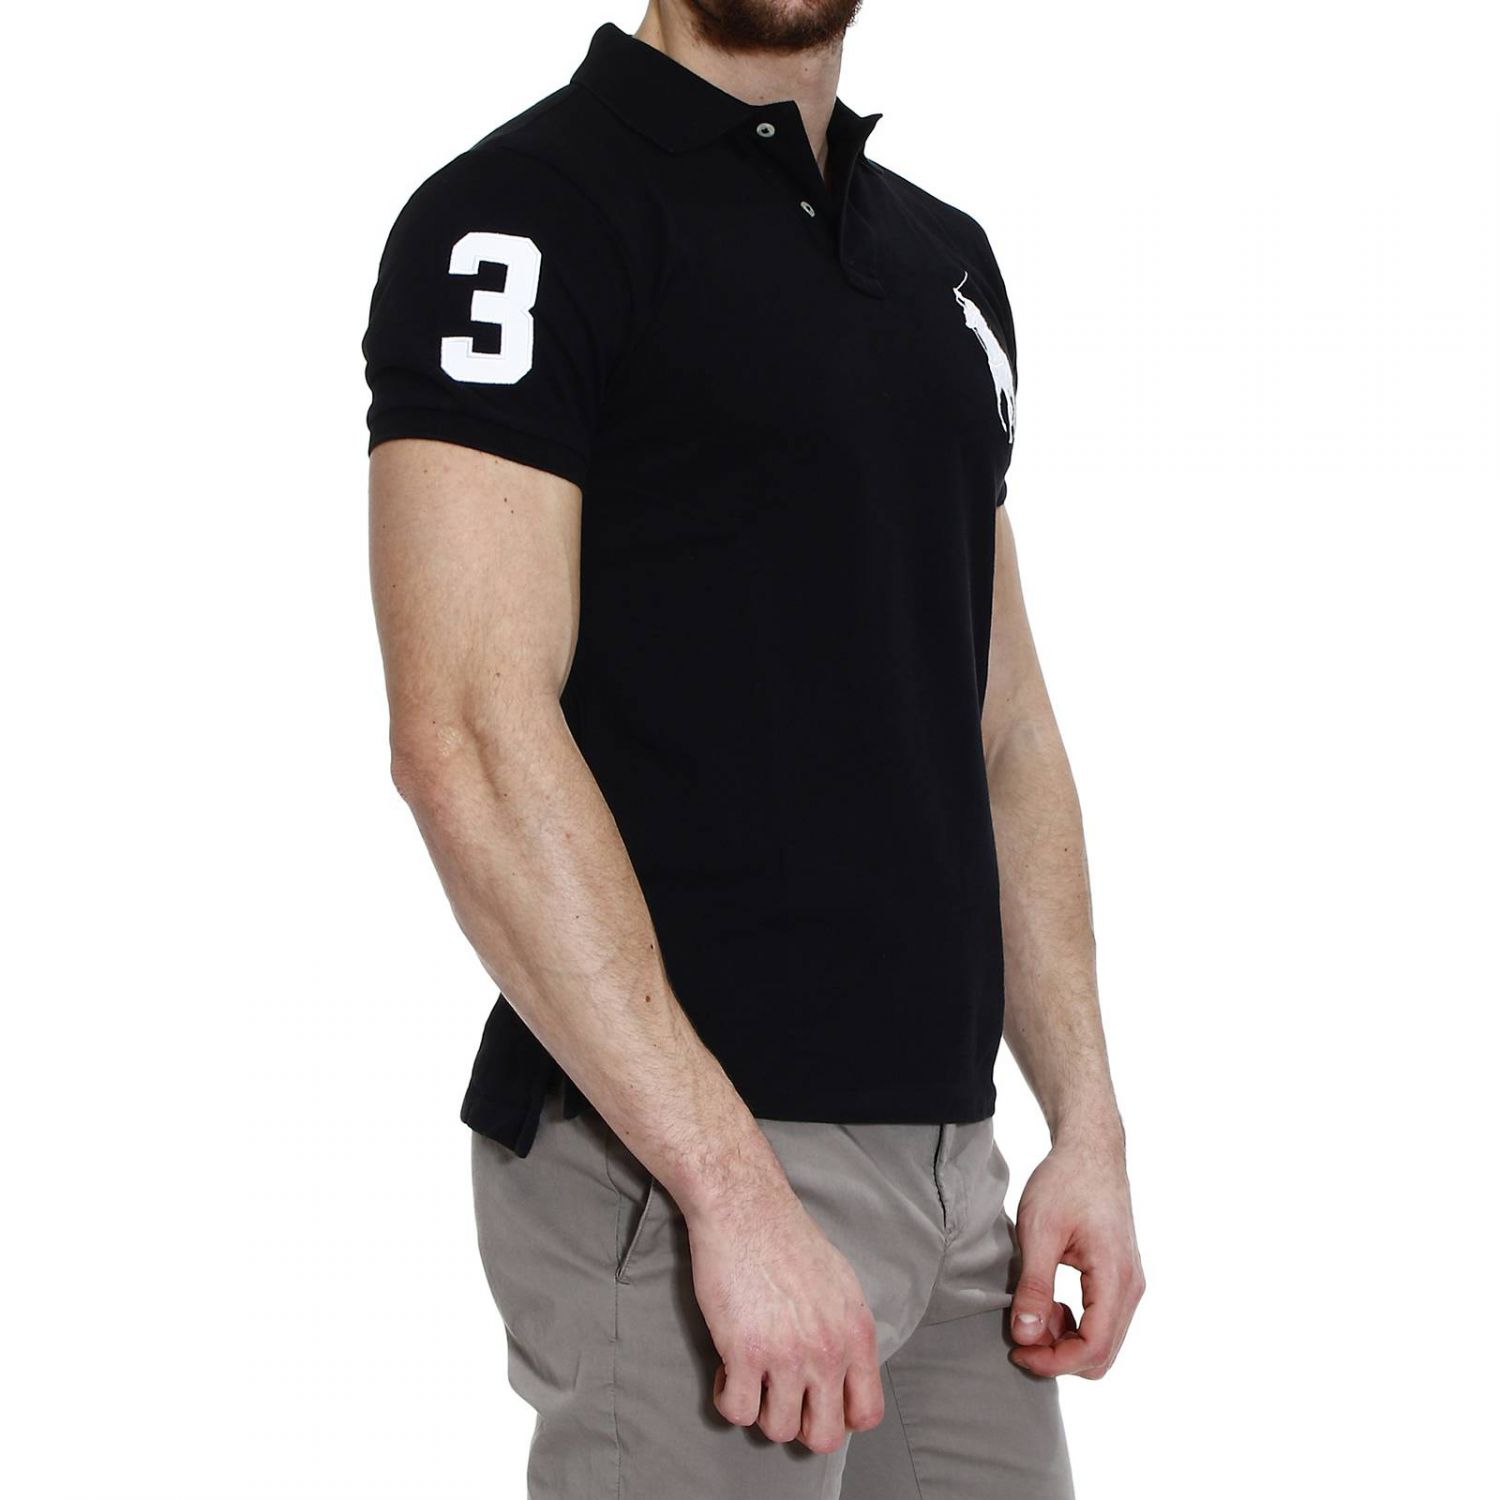 fe2acdd2d Ralph Lauren-rl summer-Men's big pony polo Sale Online, 100% Quality  Guarantee | Shop Ralph Lauren-rl summer-Men's big pony polo Clearance  Outlet Online